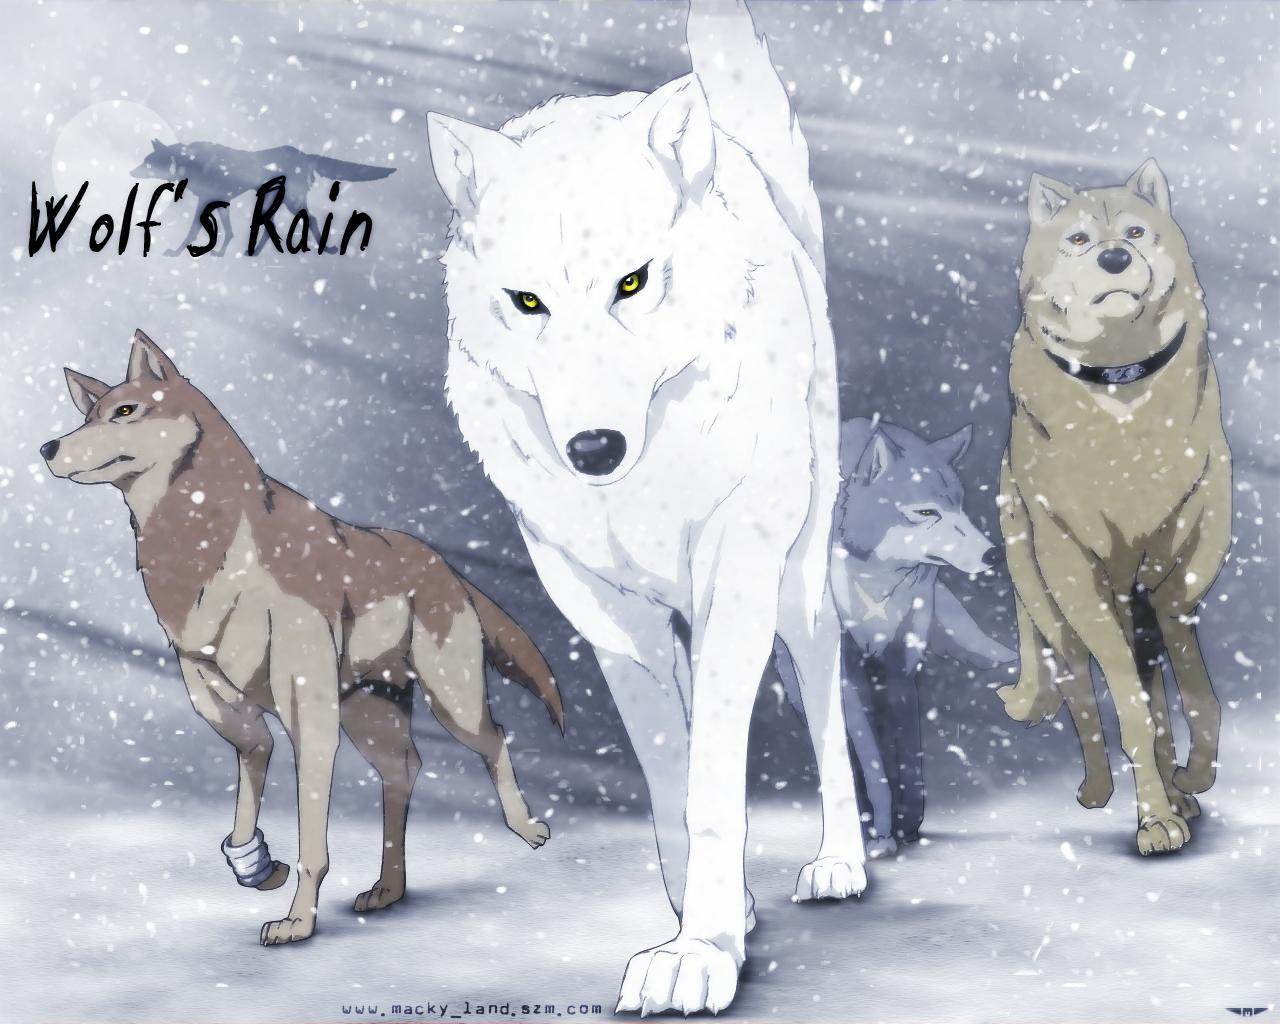 Wolf's rain, which wolf are you?